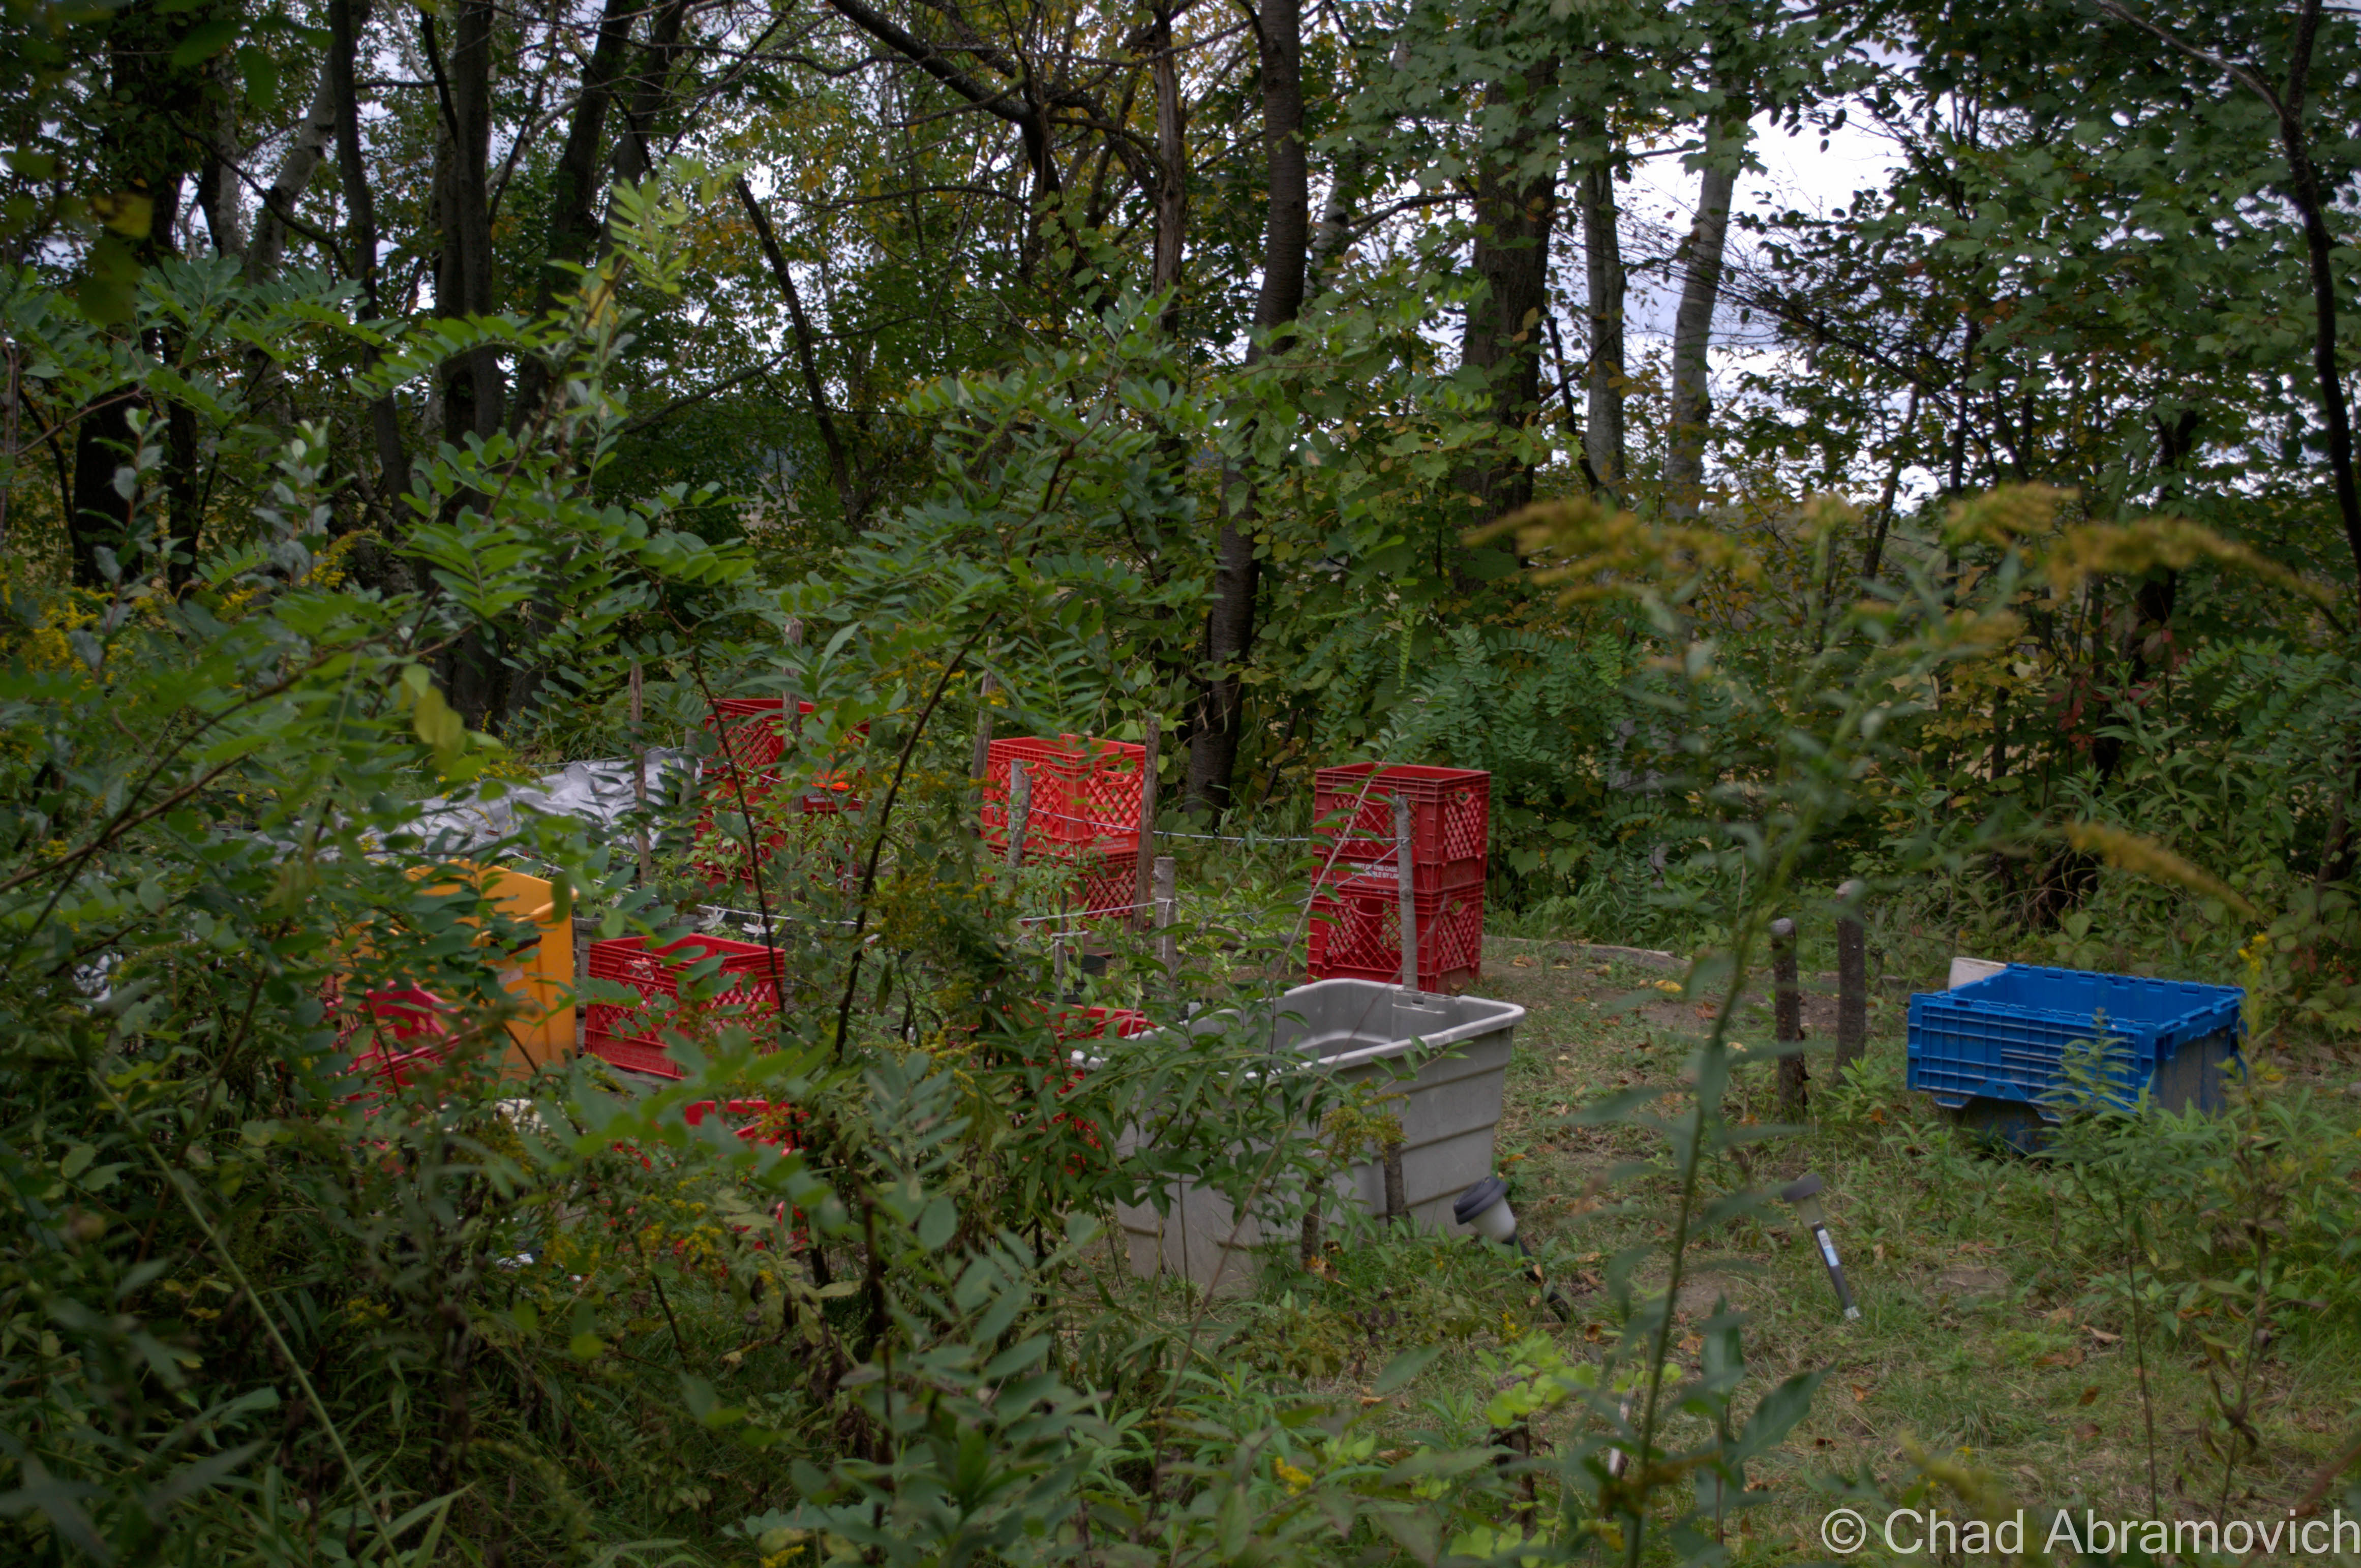 Following the path brought us right to the front door of the exact thing I expected and yet didn't want to see – a homeless camp. Tents, sleeping bags and shopping carts were stashed underneath thick foliage that clinged to my jacket.